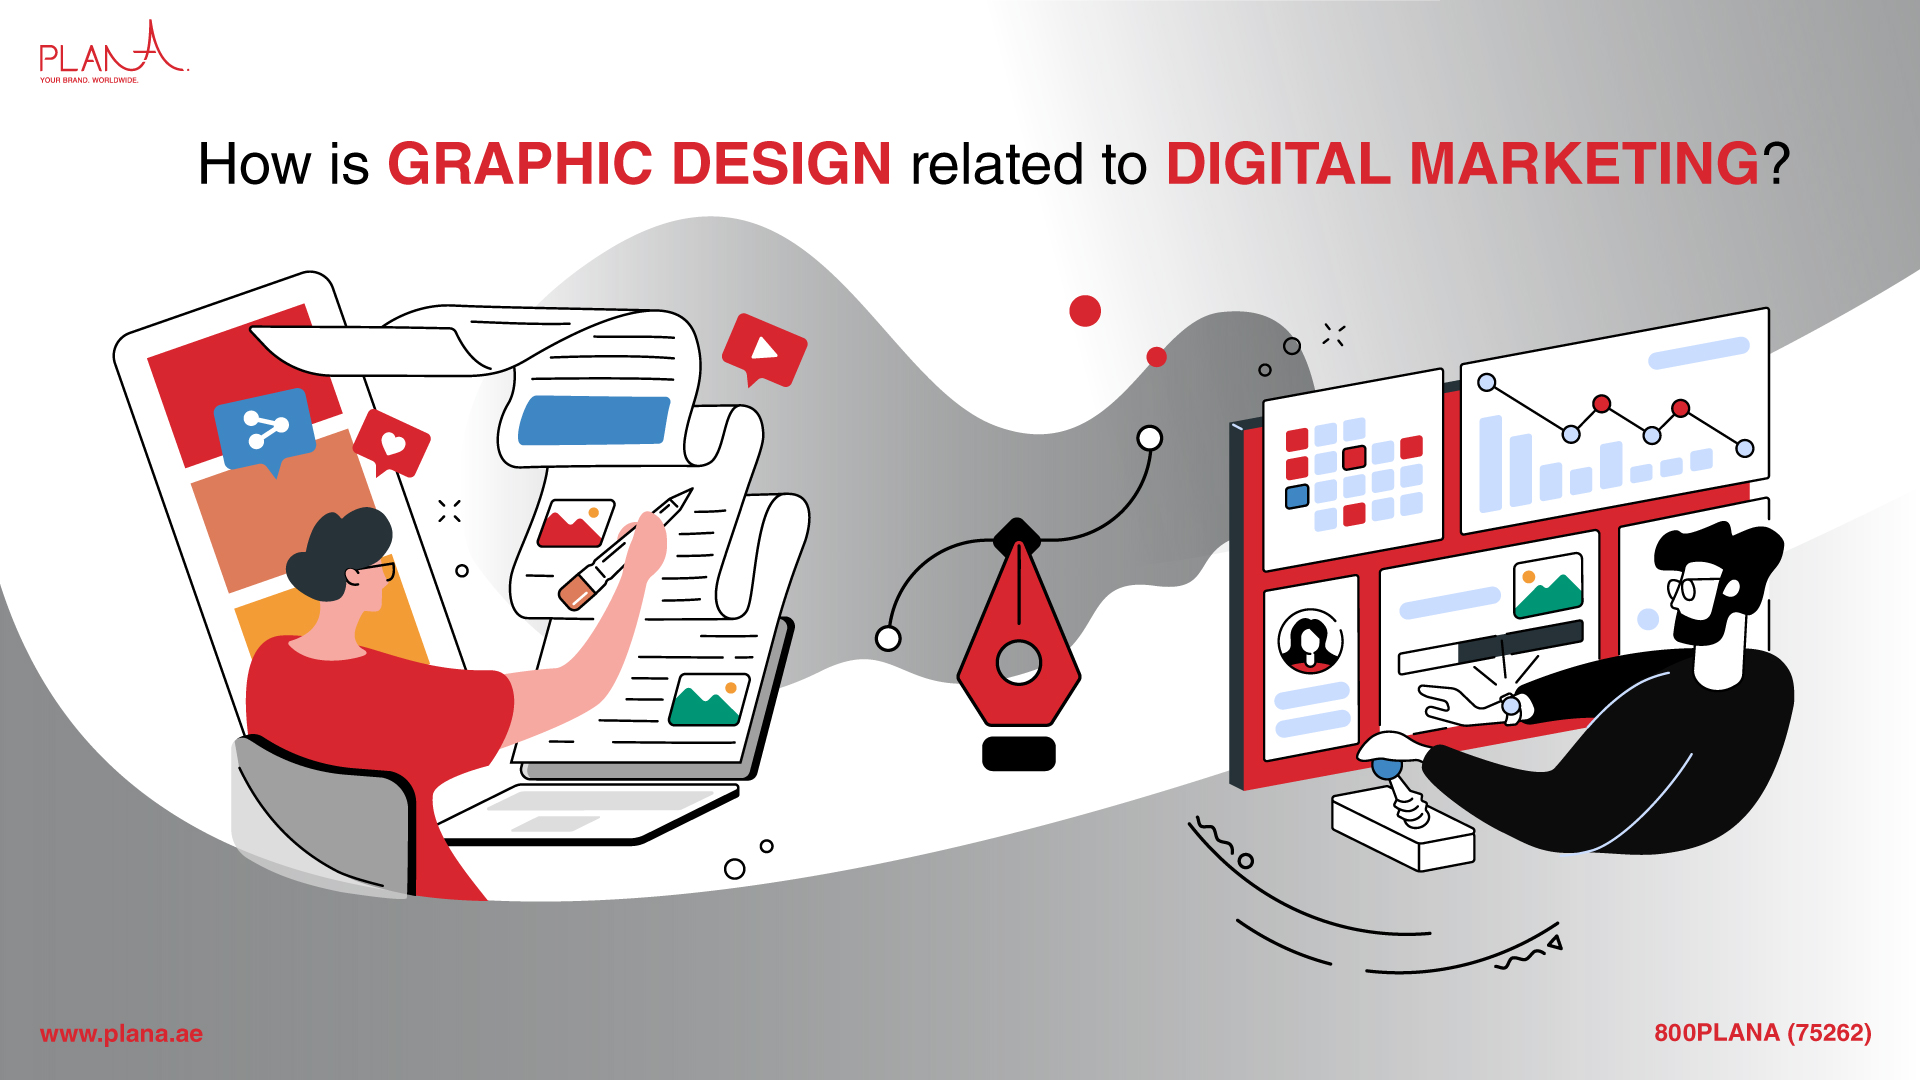 How Is Graphic Design Related to Digital Marketing?